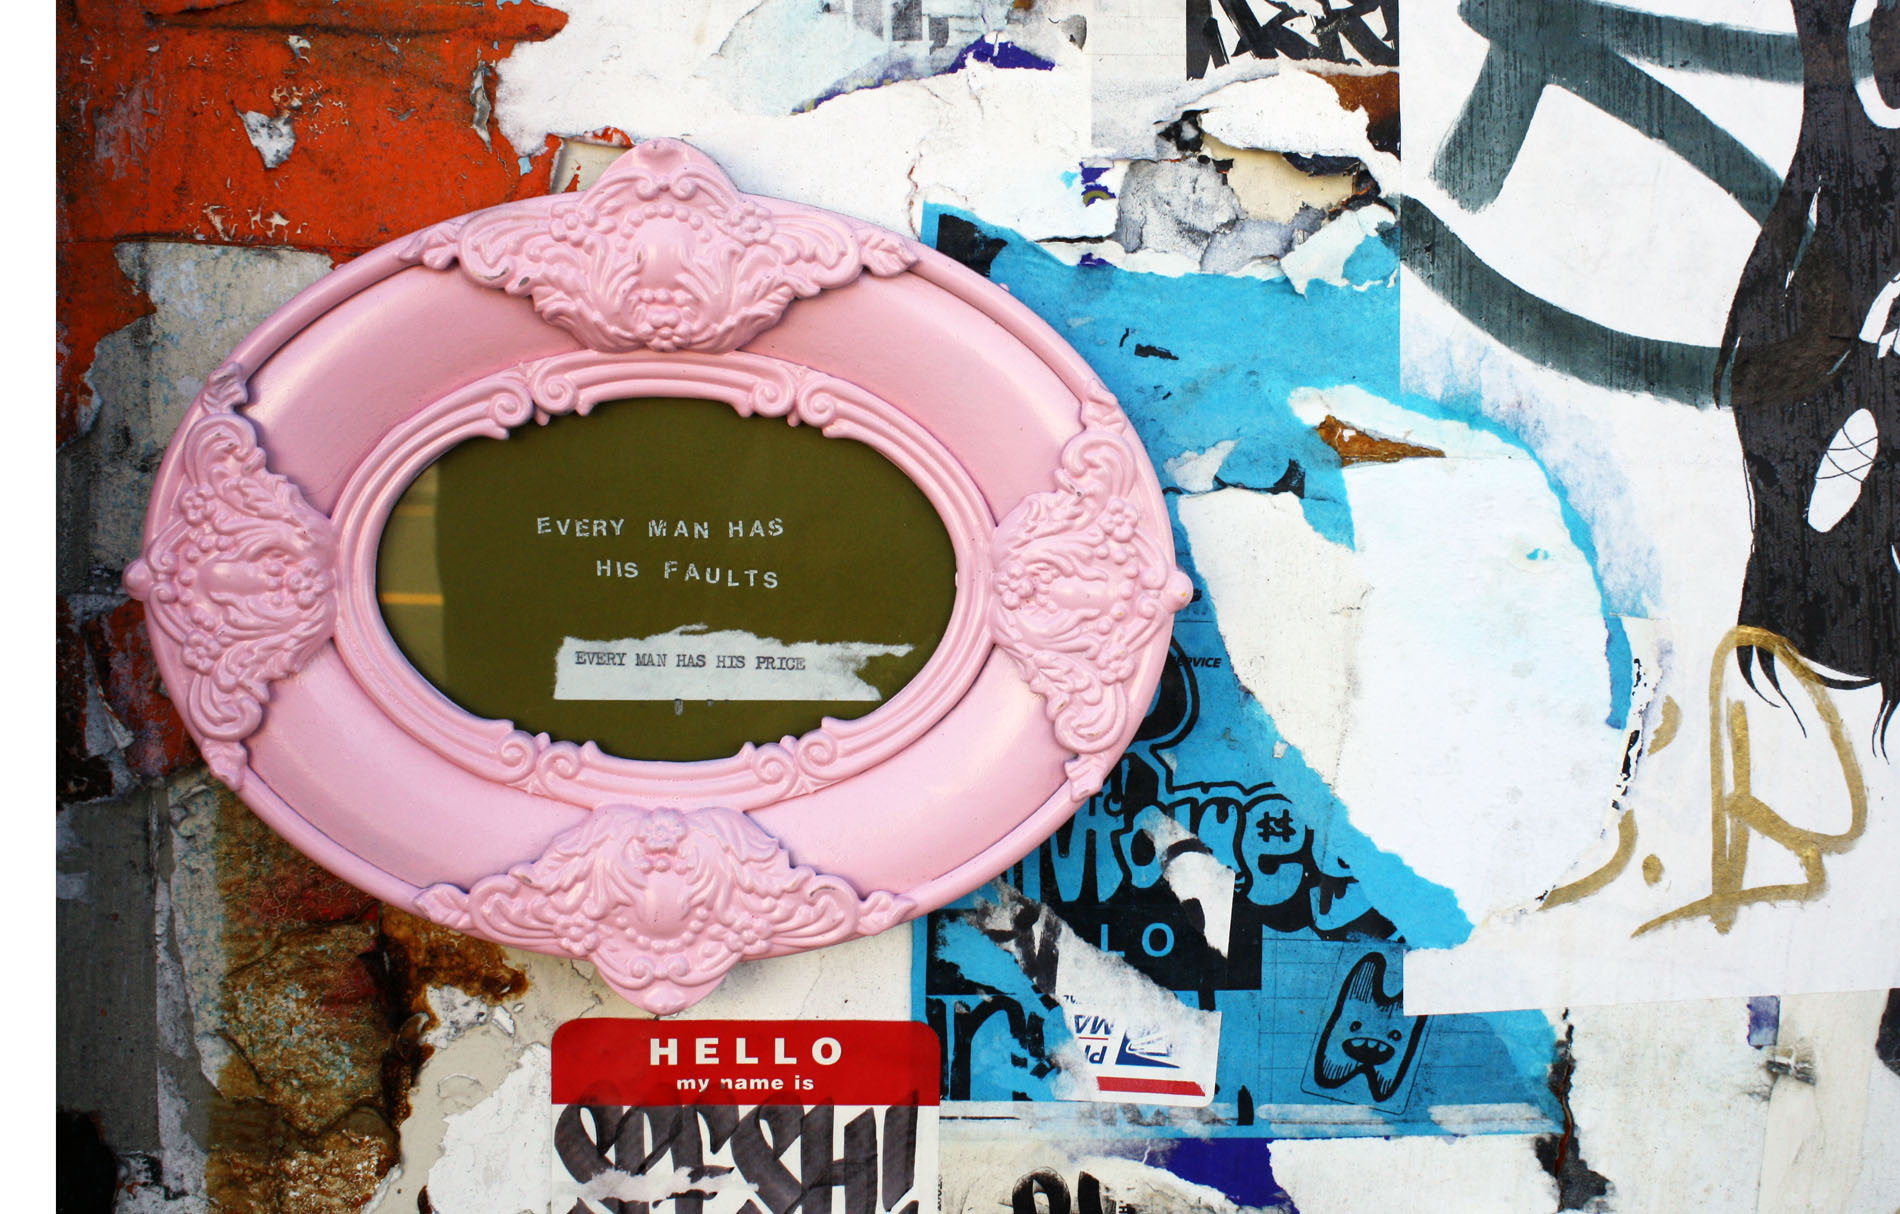 Summer Graffiti: Pink Picture Frames and Leather Daddies